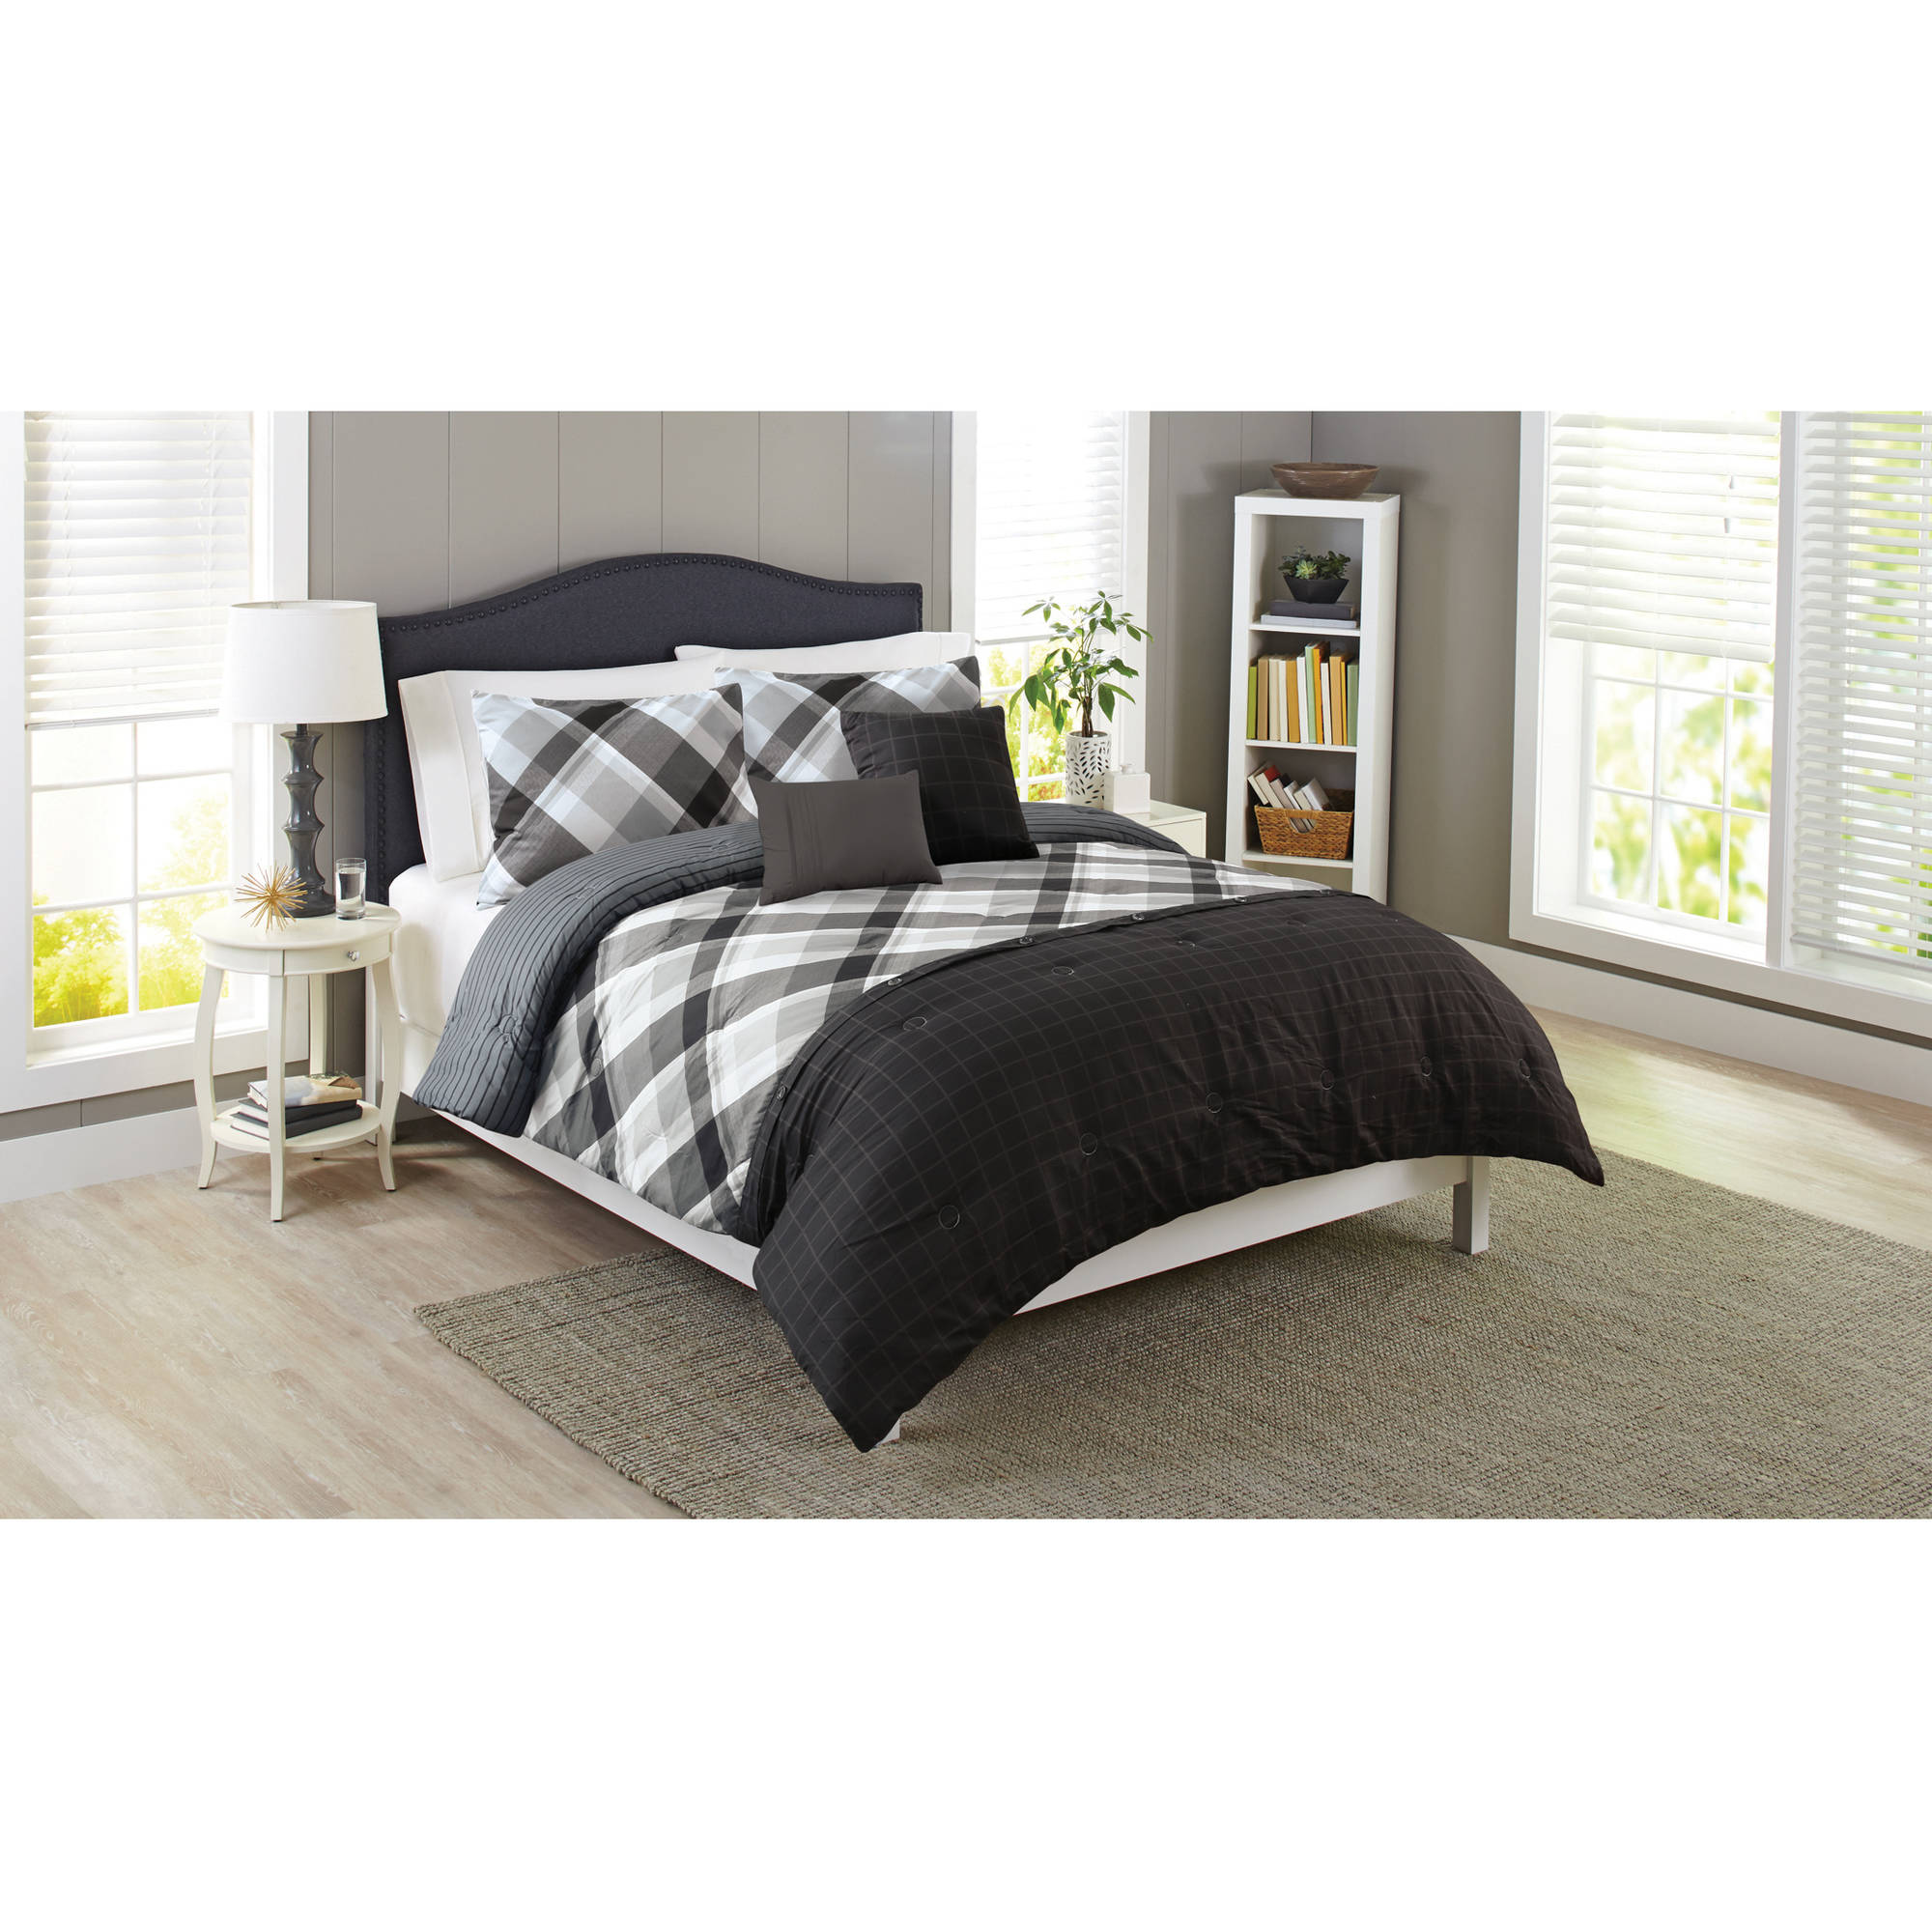 Better Homes & Gardens Full or Queen Black Plaid Comforter Set, 5 Piece